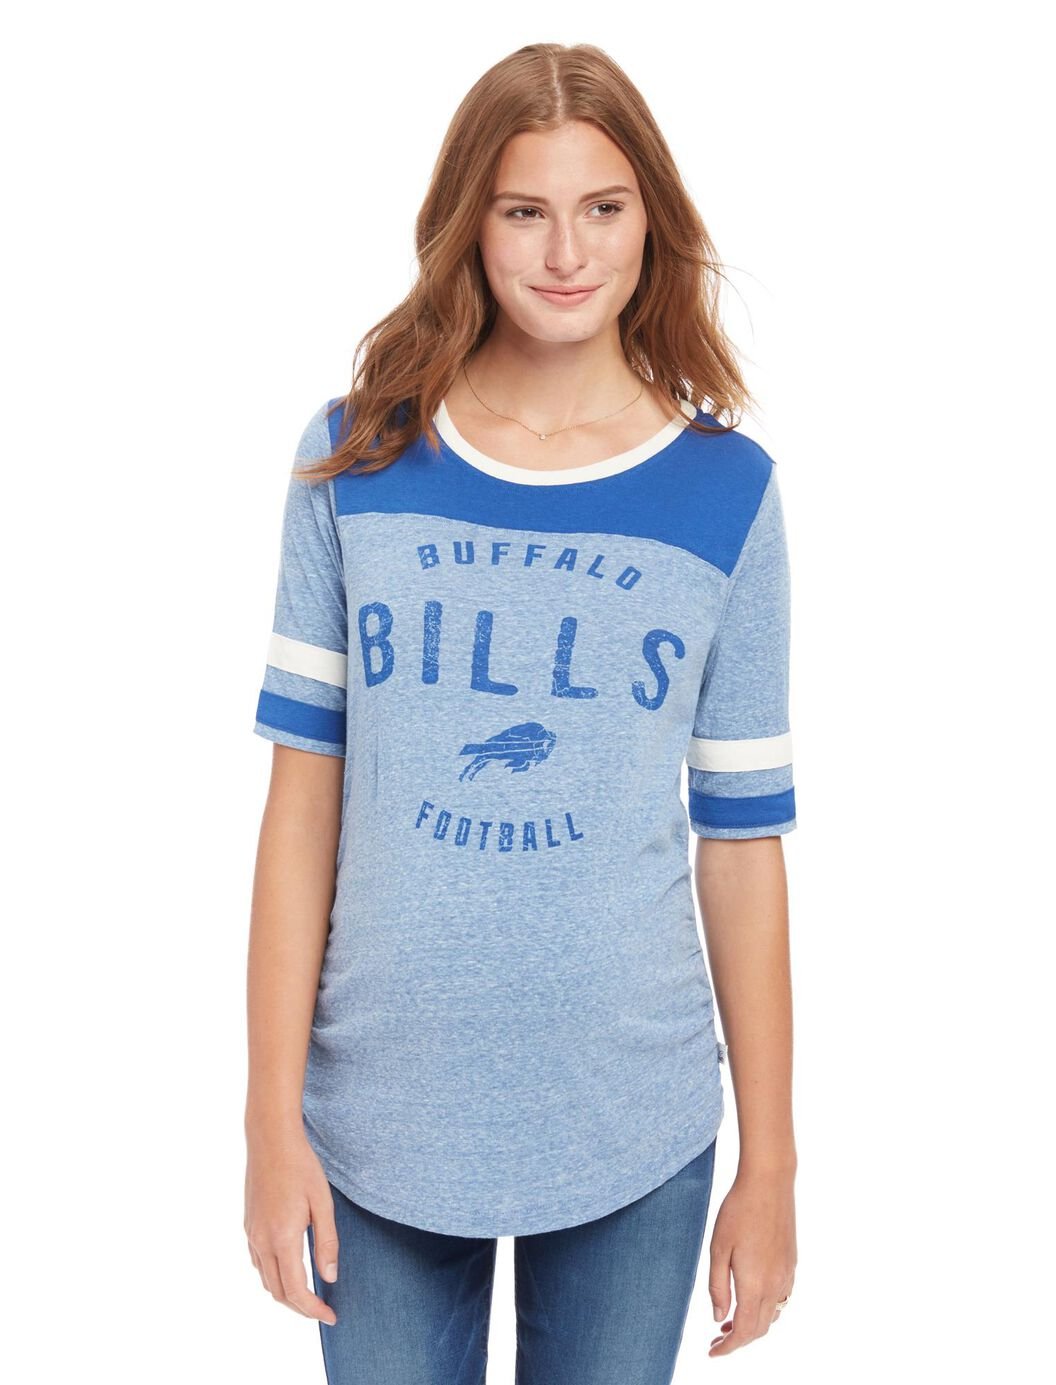 Buffalo Bills NFL Elbow Sleeve Maternity Graphic Tee at Motherhood Maternity in Victor, NY | Tuggl